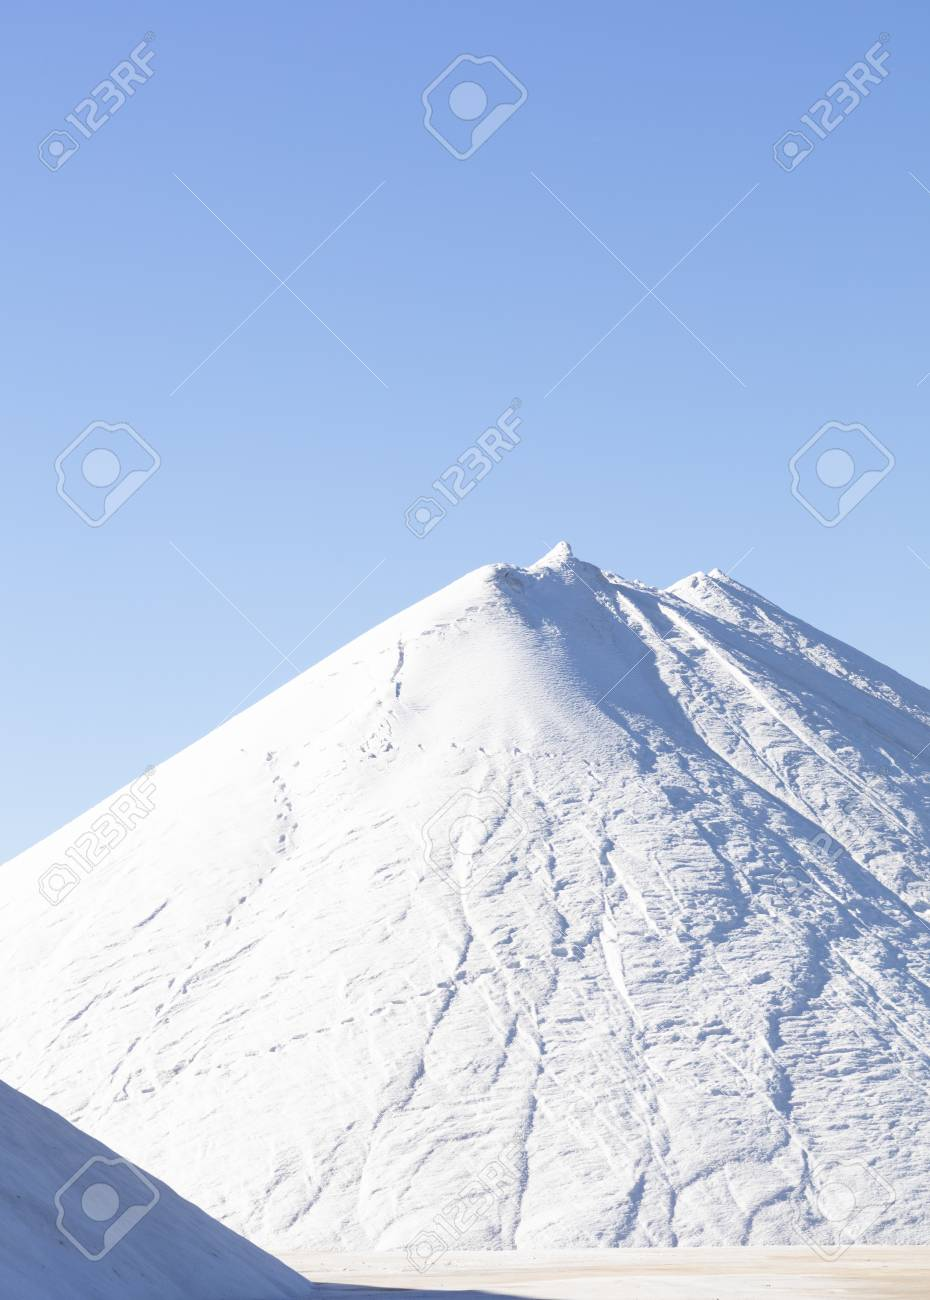 white salt mountain on blue background, high resolution image and size - 116921202